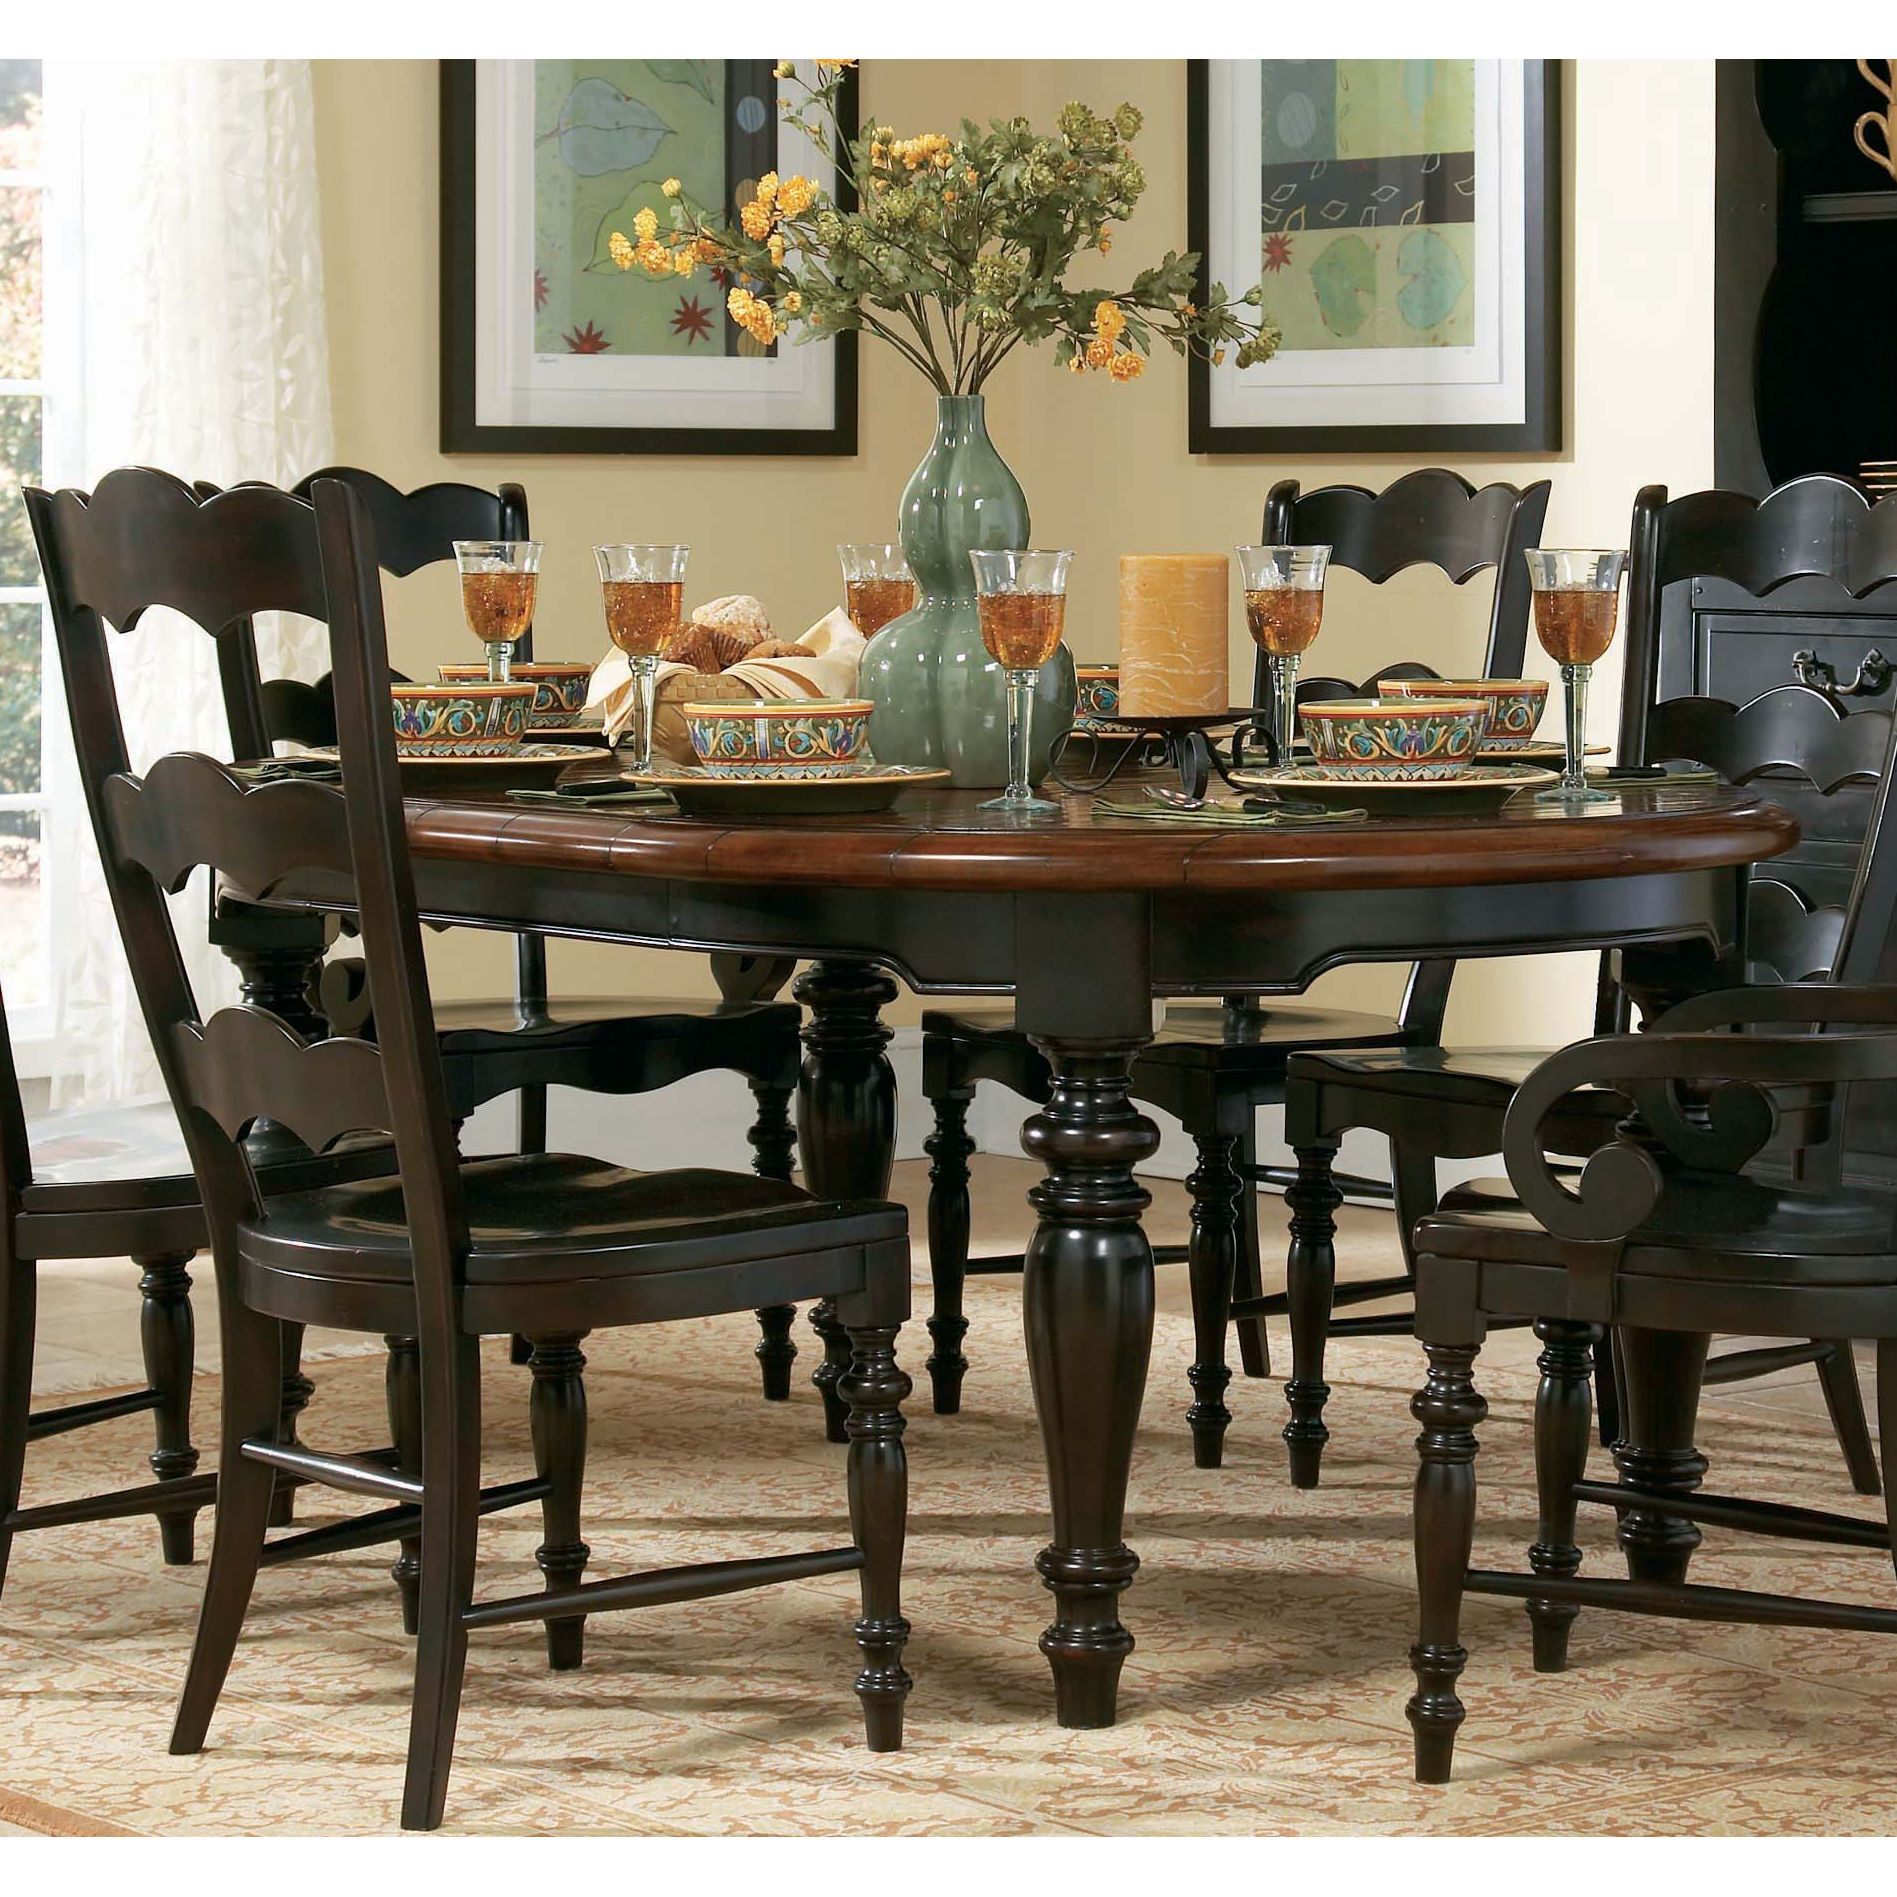 Hooker Furniture 495 75 200 Centre Street Round Dining Table Home Decorating Pinterest